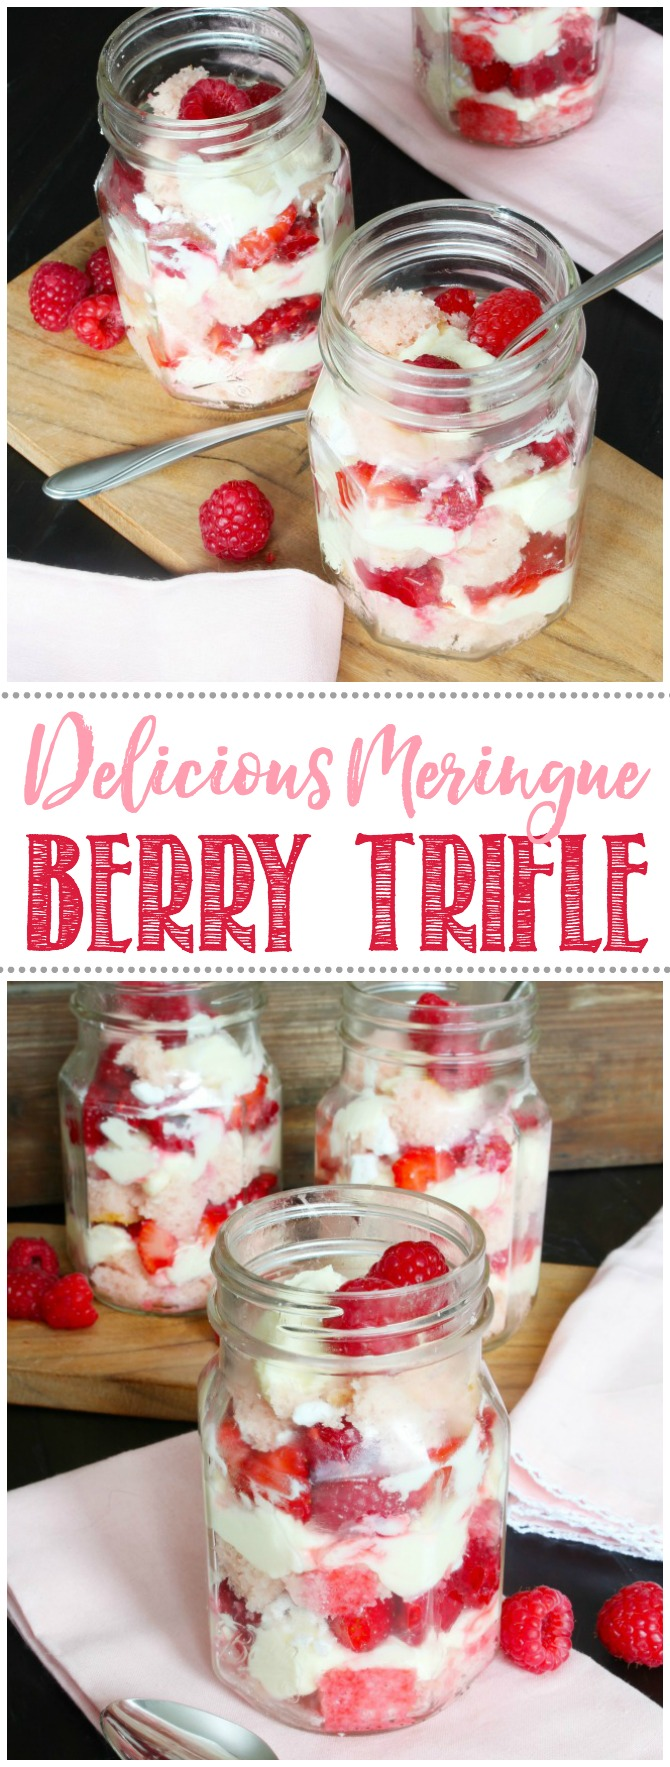 Berry meringue trifle in mason jars.